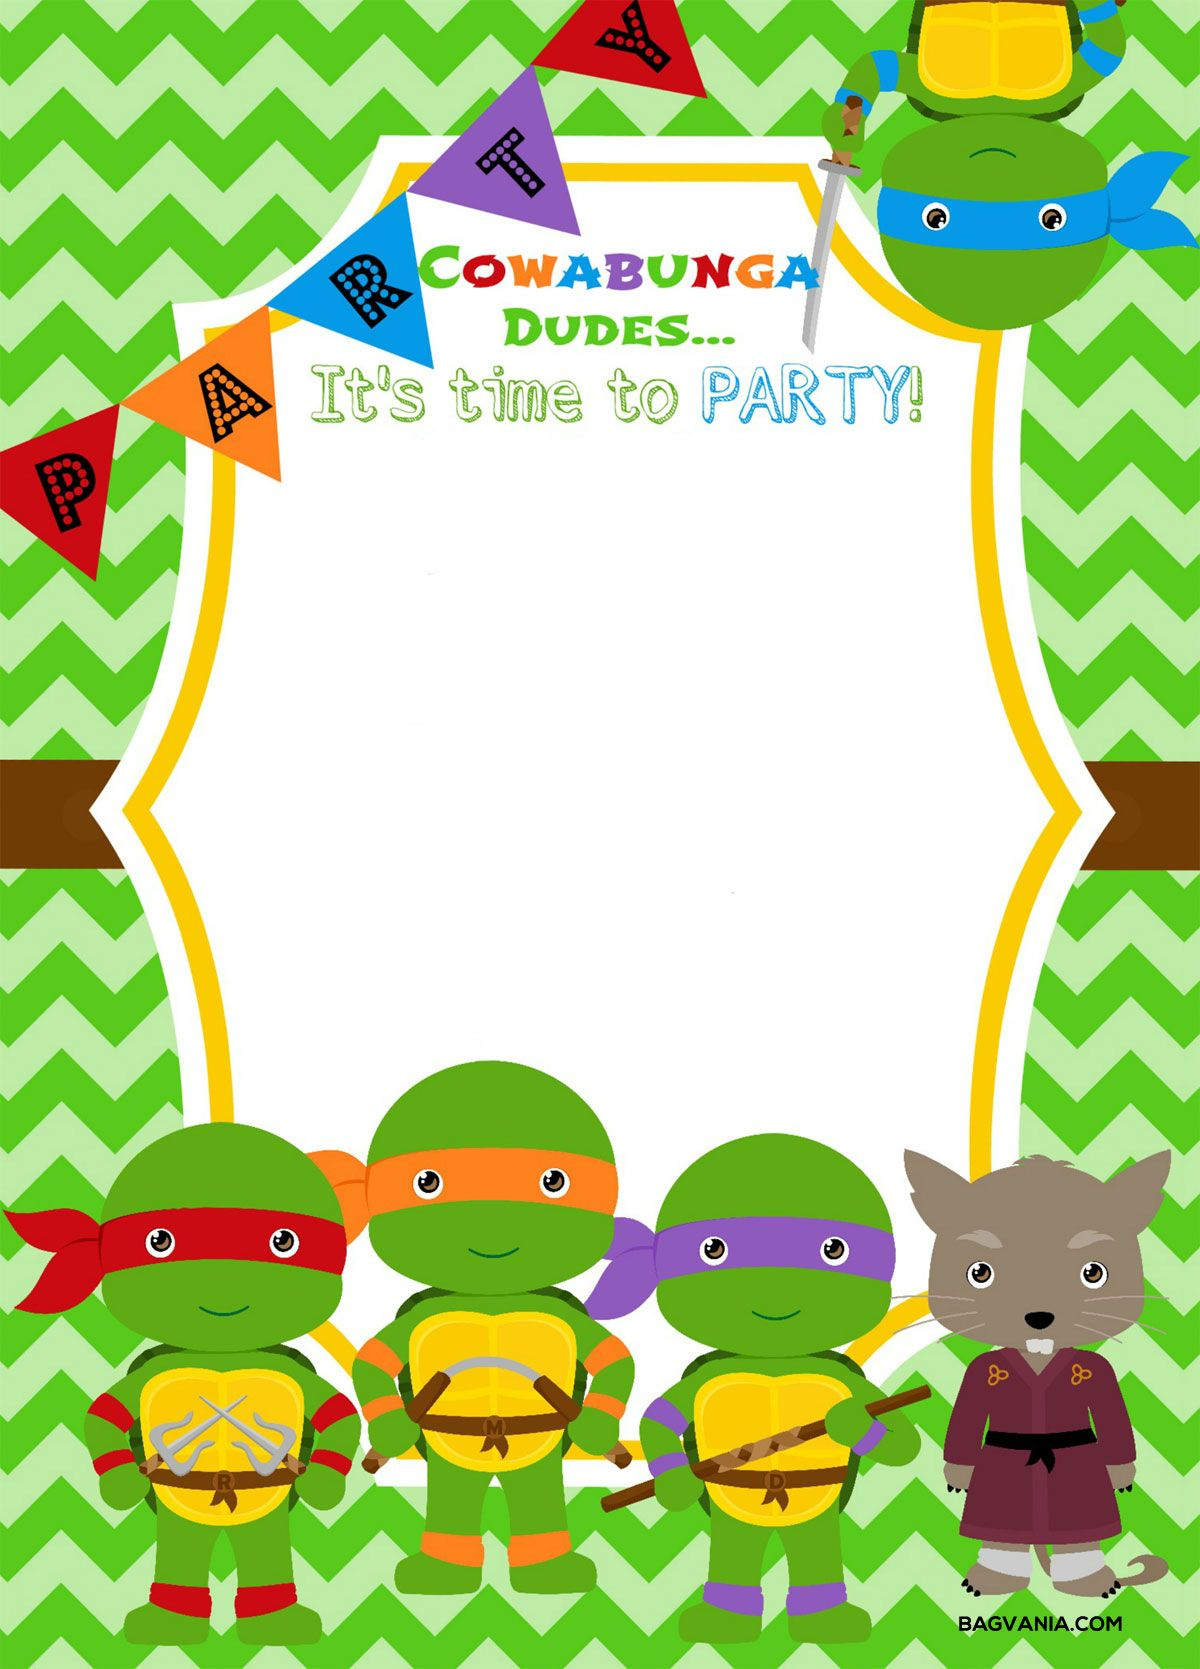 image regarding Ninja Turtles Birthday Invitations Printable identify Cost-free Printable Ninja Turtle Birthday Celebration Invites